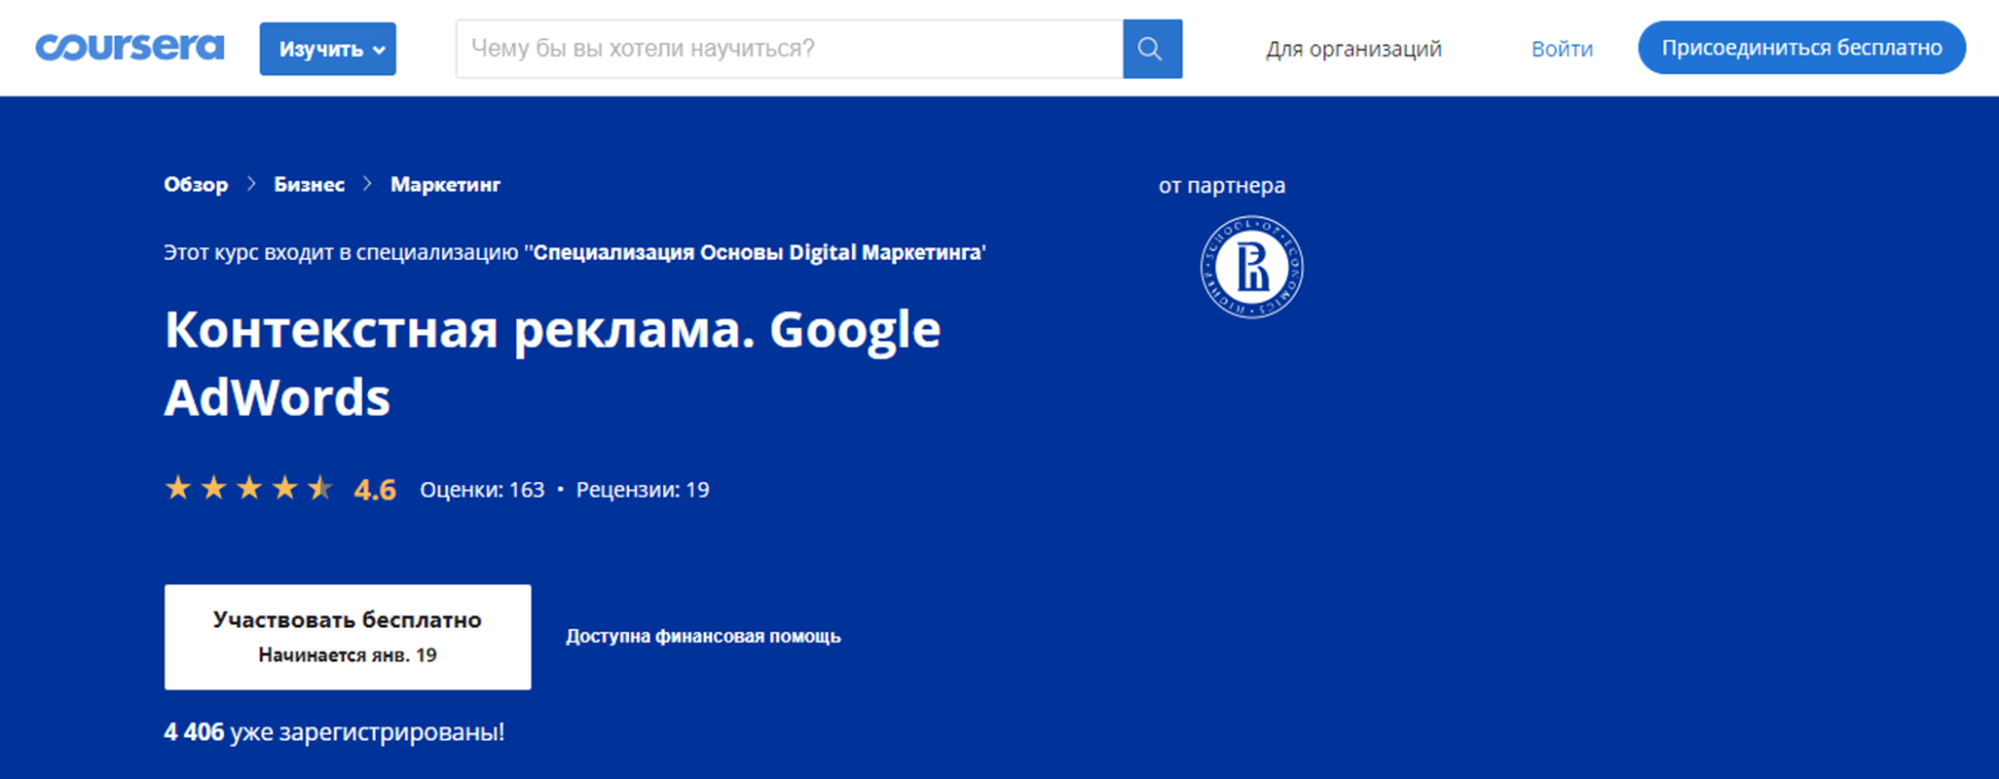 coursera Google Adwords